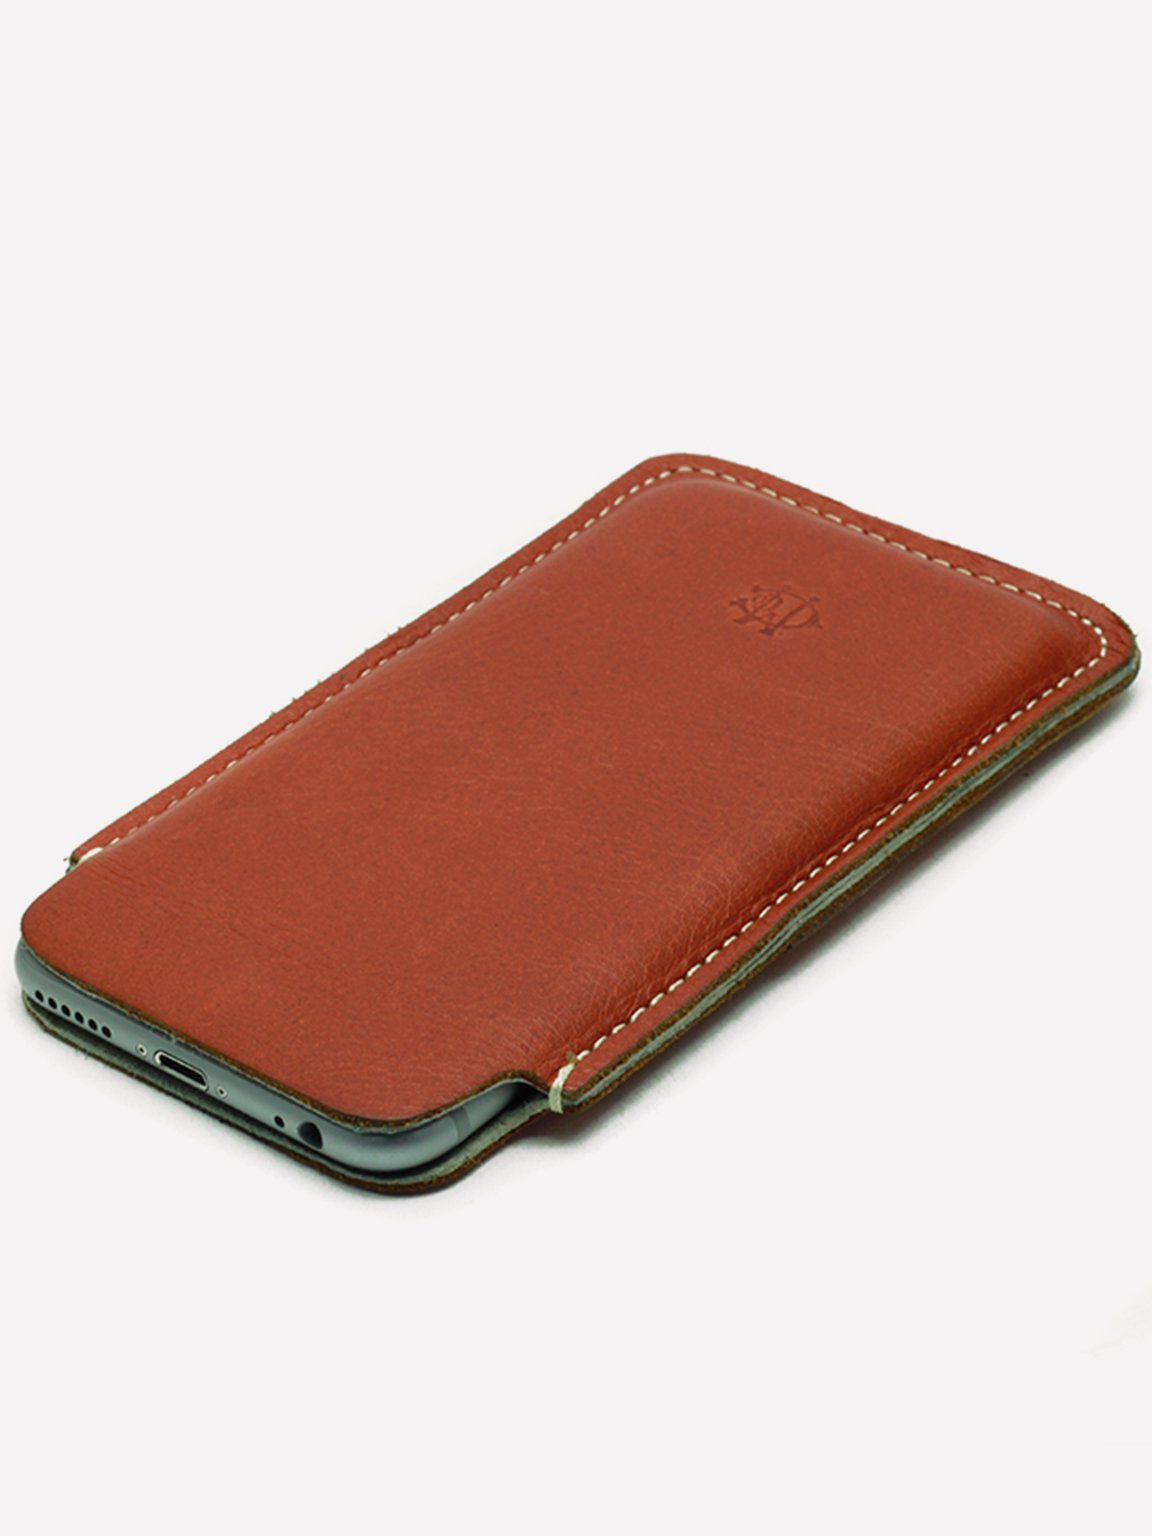 Foto do iPhone 6 Case Cutterman - Whisky